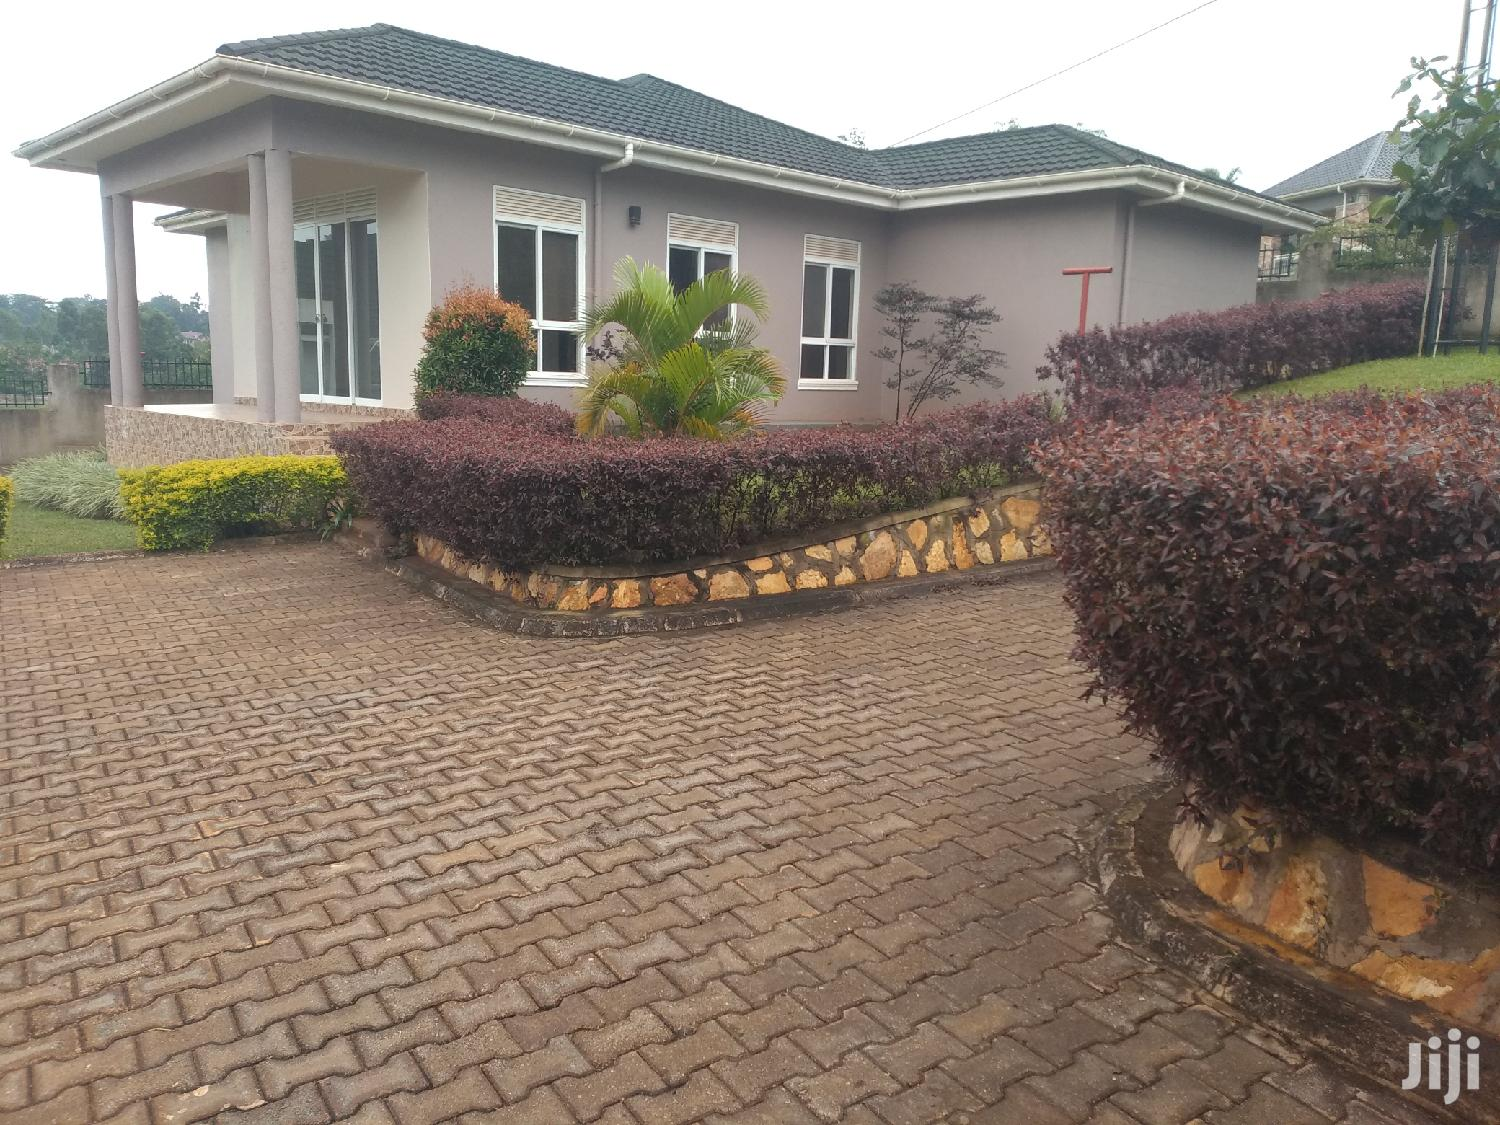 Estate House For Sale Kira Four Bedrooms With Ready Land Title | Houses & Apartments For Sale for sale in Kampala, Central Region, Uganda